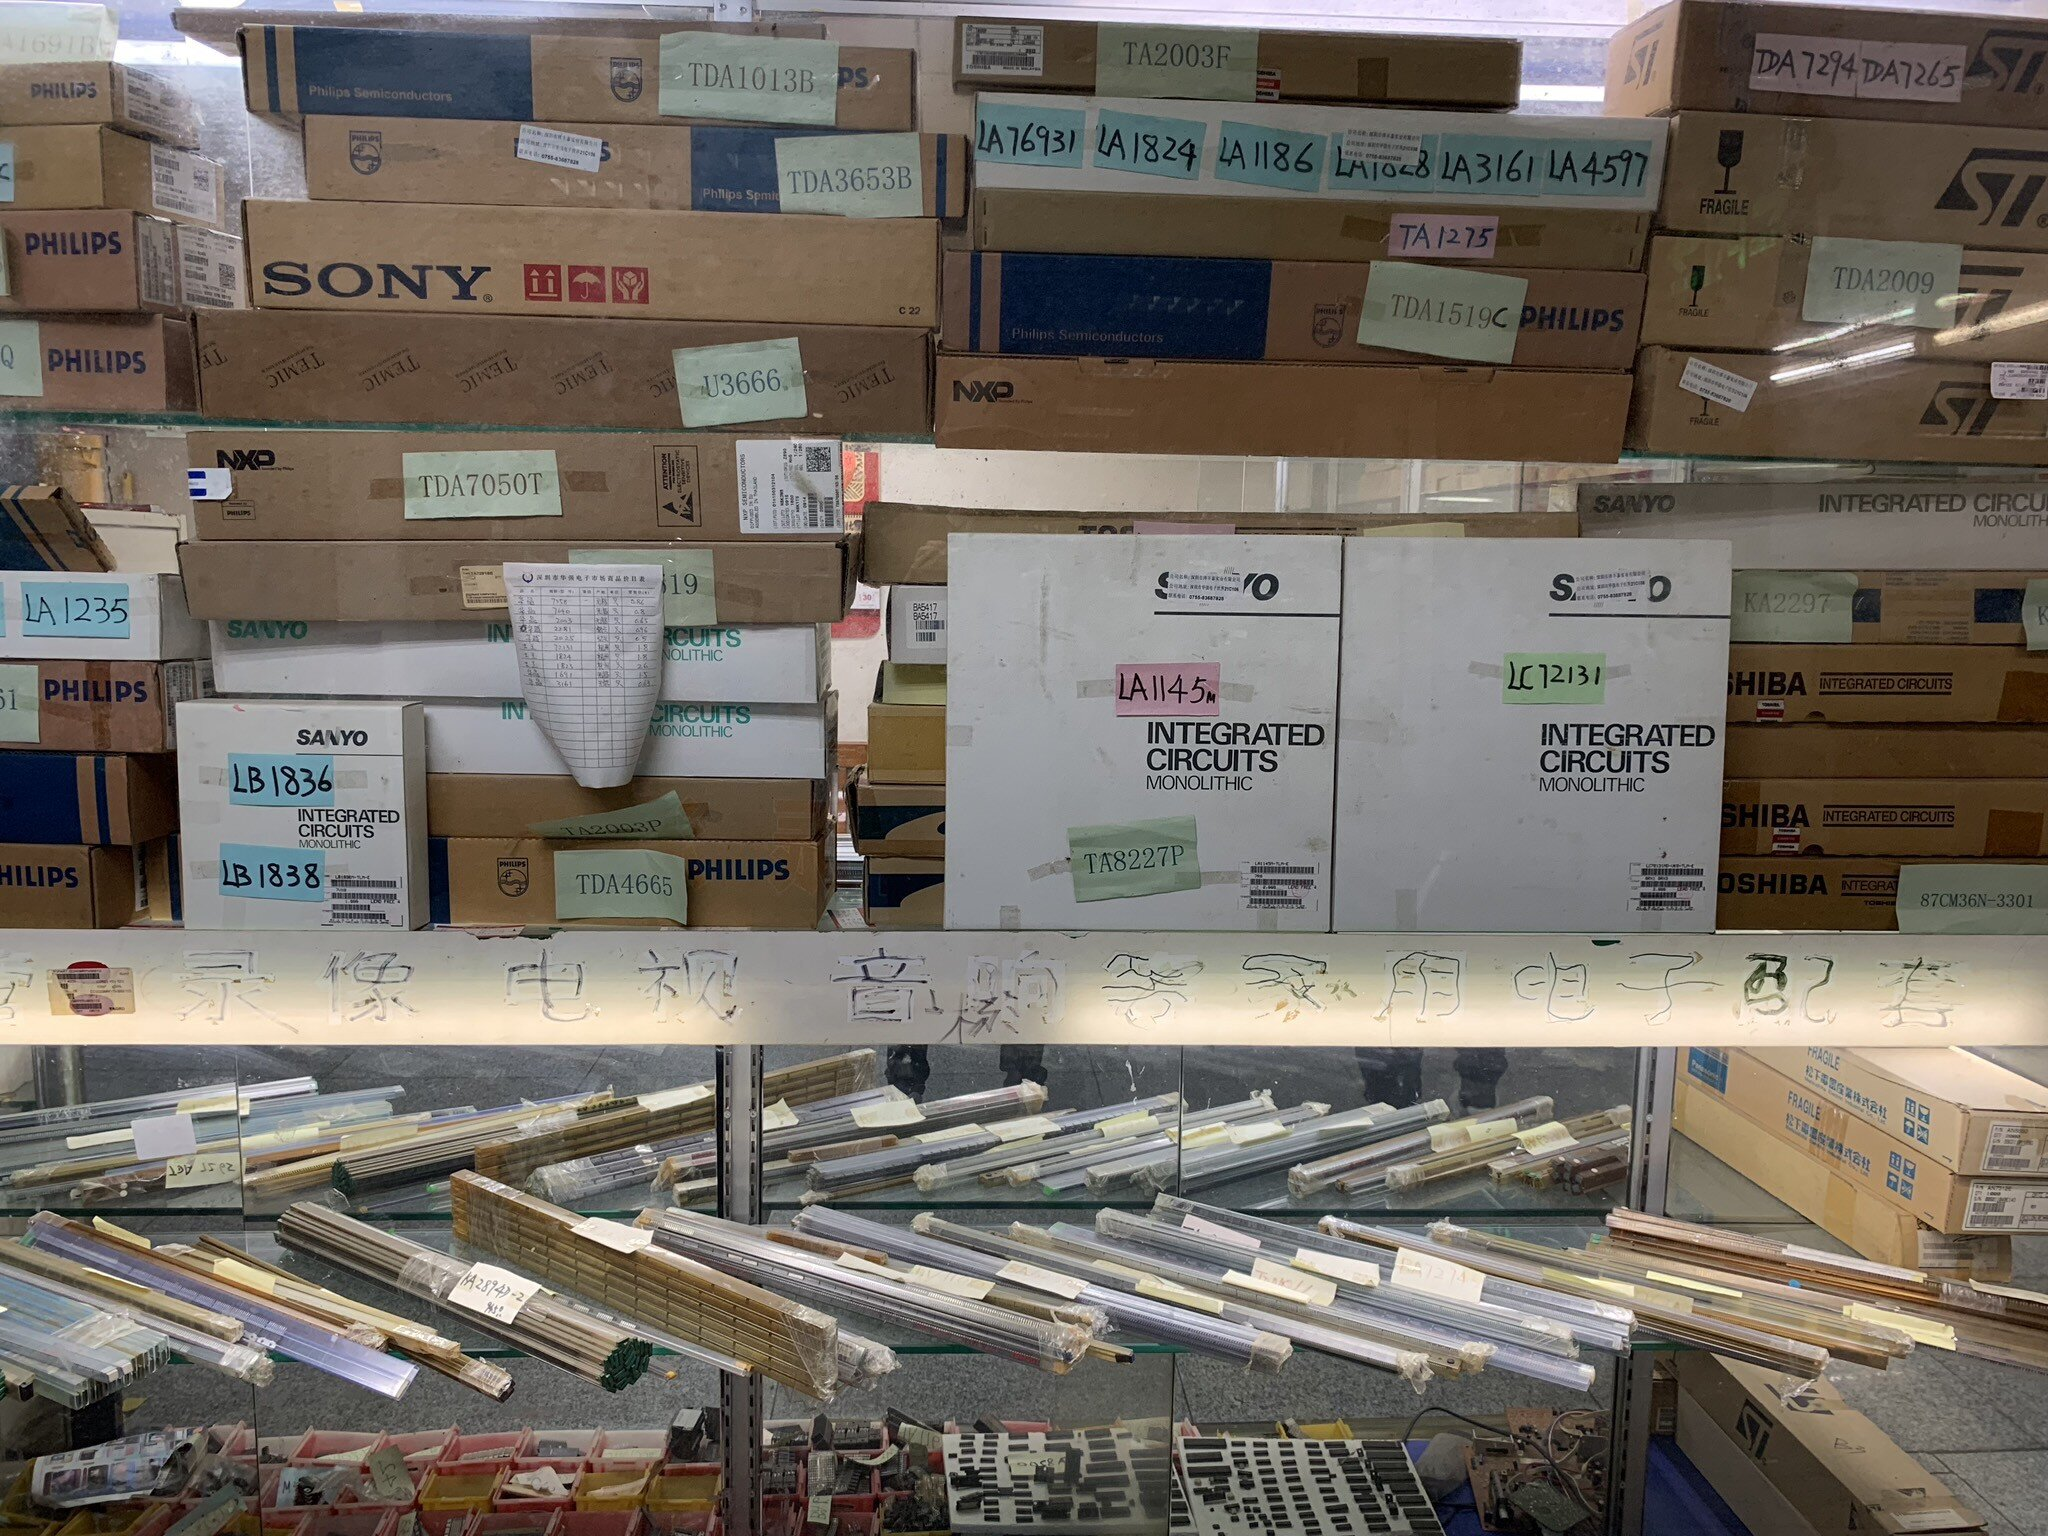 Shenzhen's electronics markets in the Huaqiangbei district are a one-stop-shop for everything you need to build and rapid prototype. This is one of thousands of booths where you can pick up literally anything electronic.